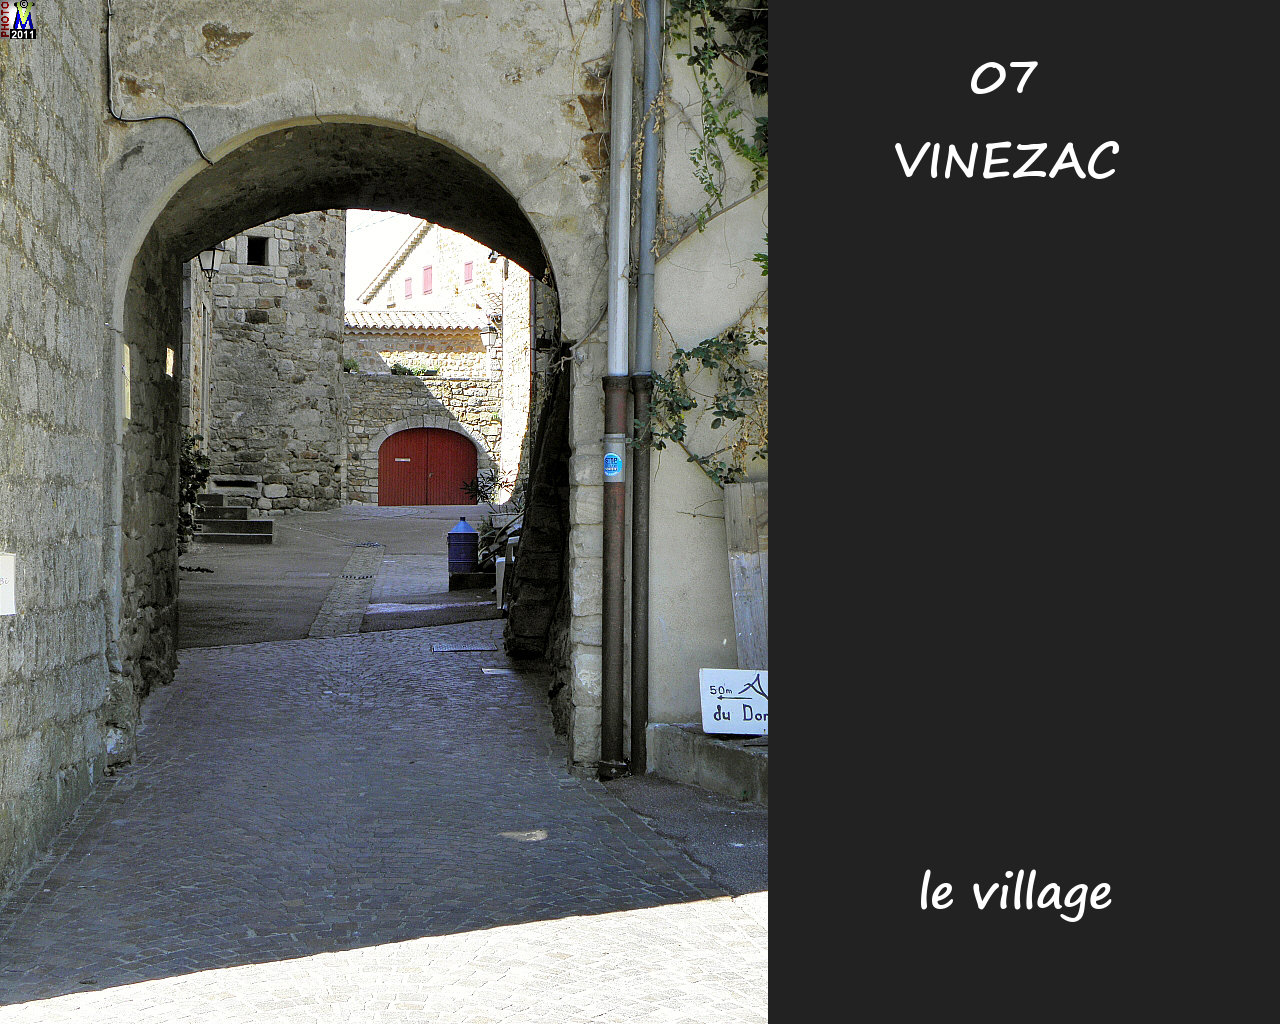 07VINEZAC_village_138.jpg